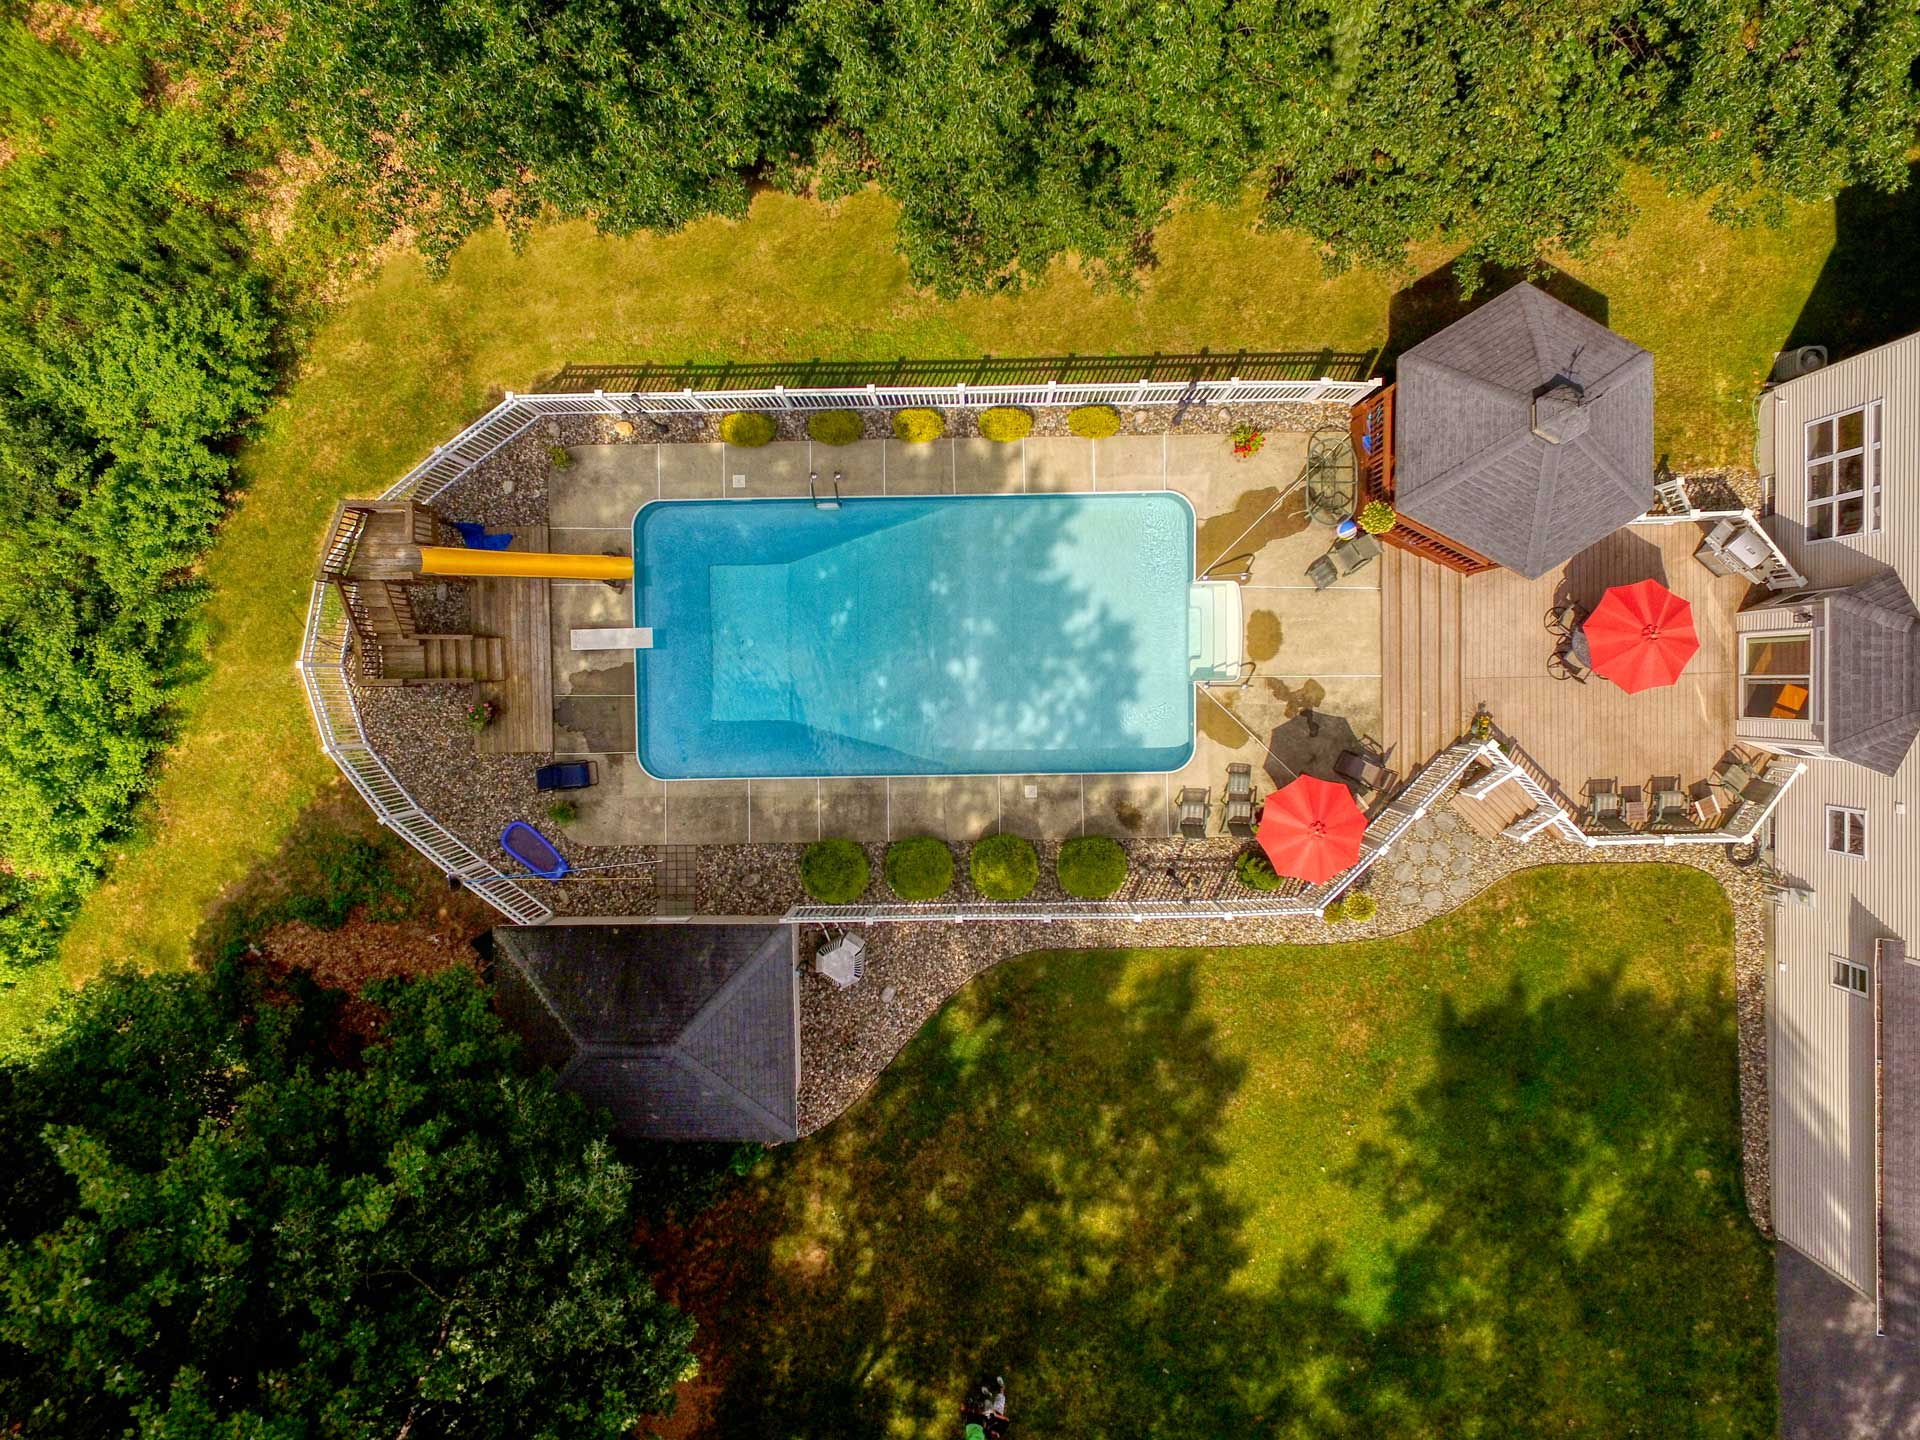 Aerial photo looking straight down at indoor pool in backyard of property in Ballston Spa, New York.